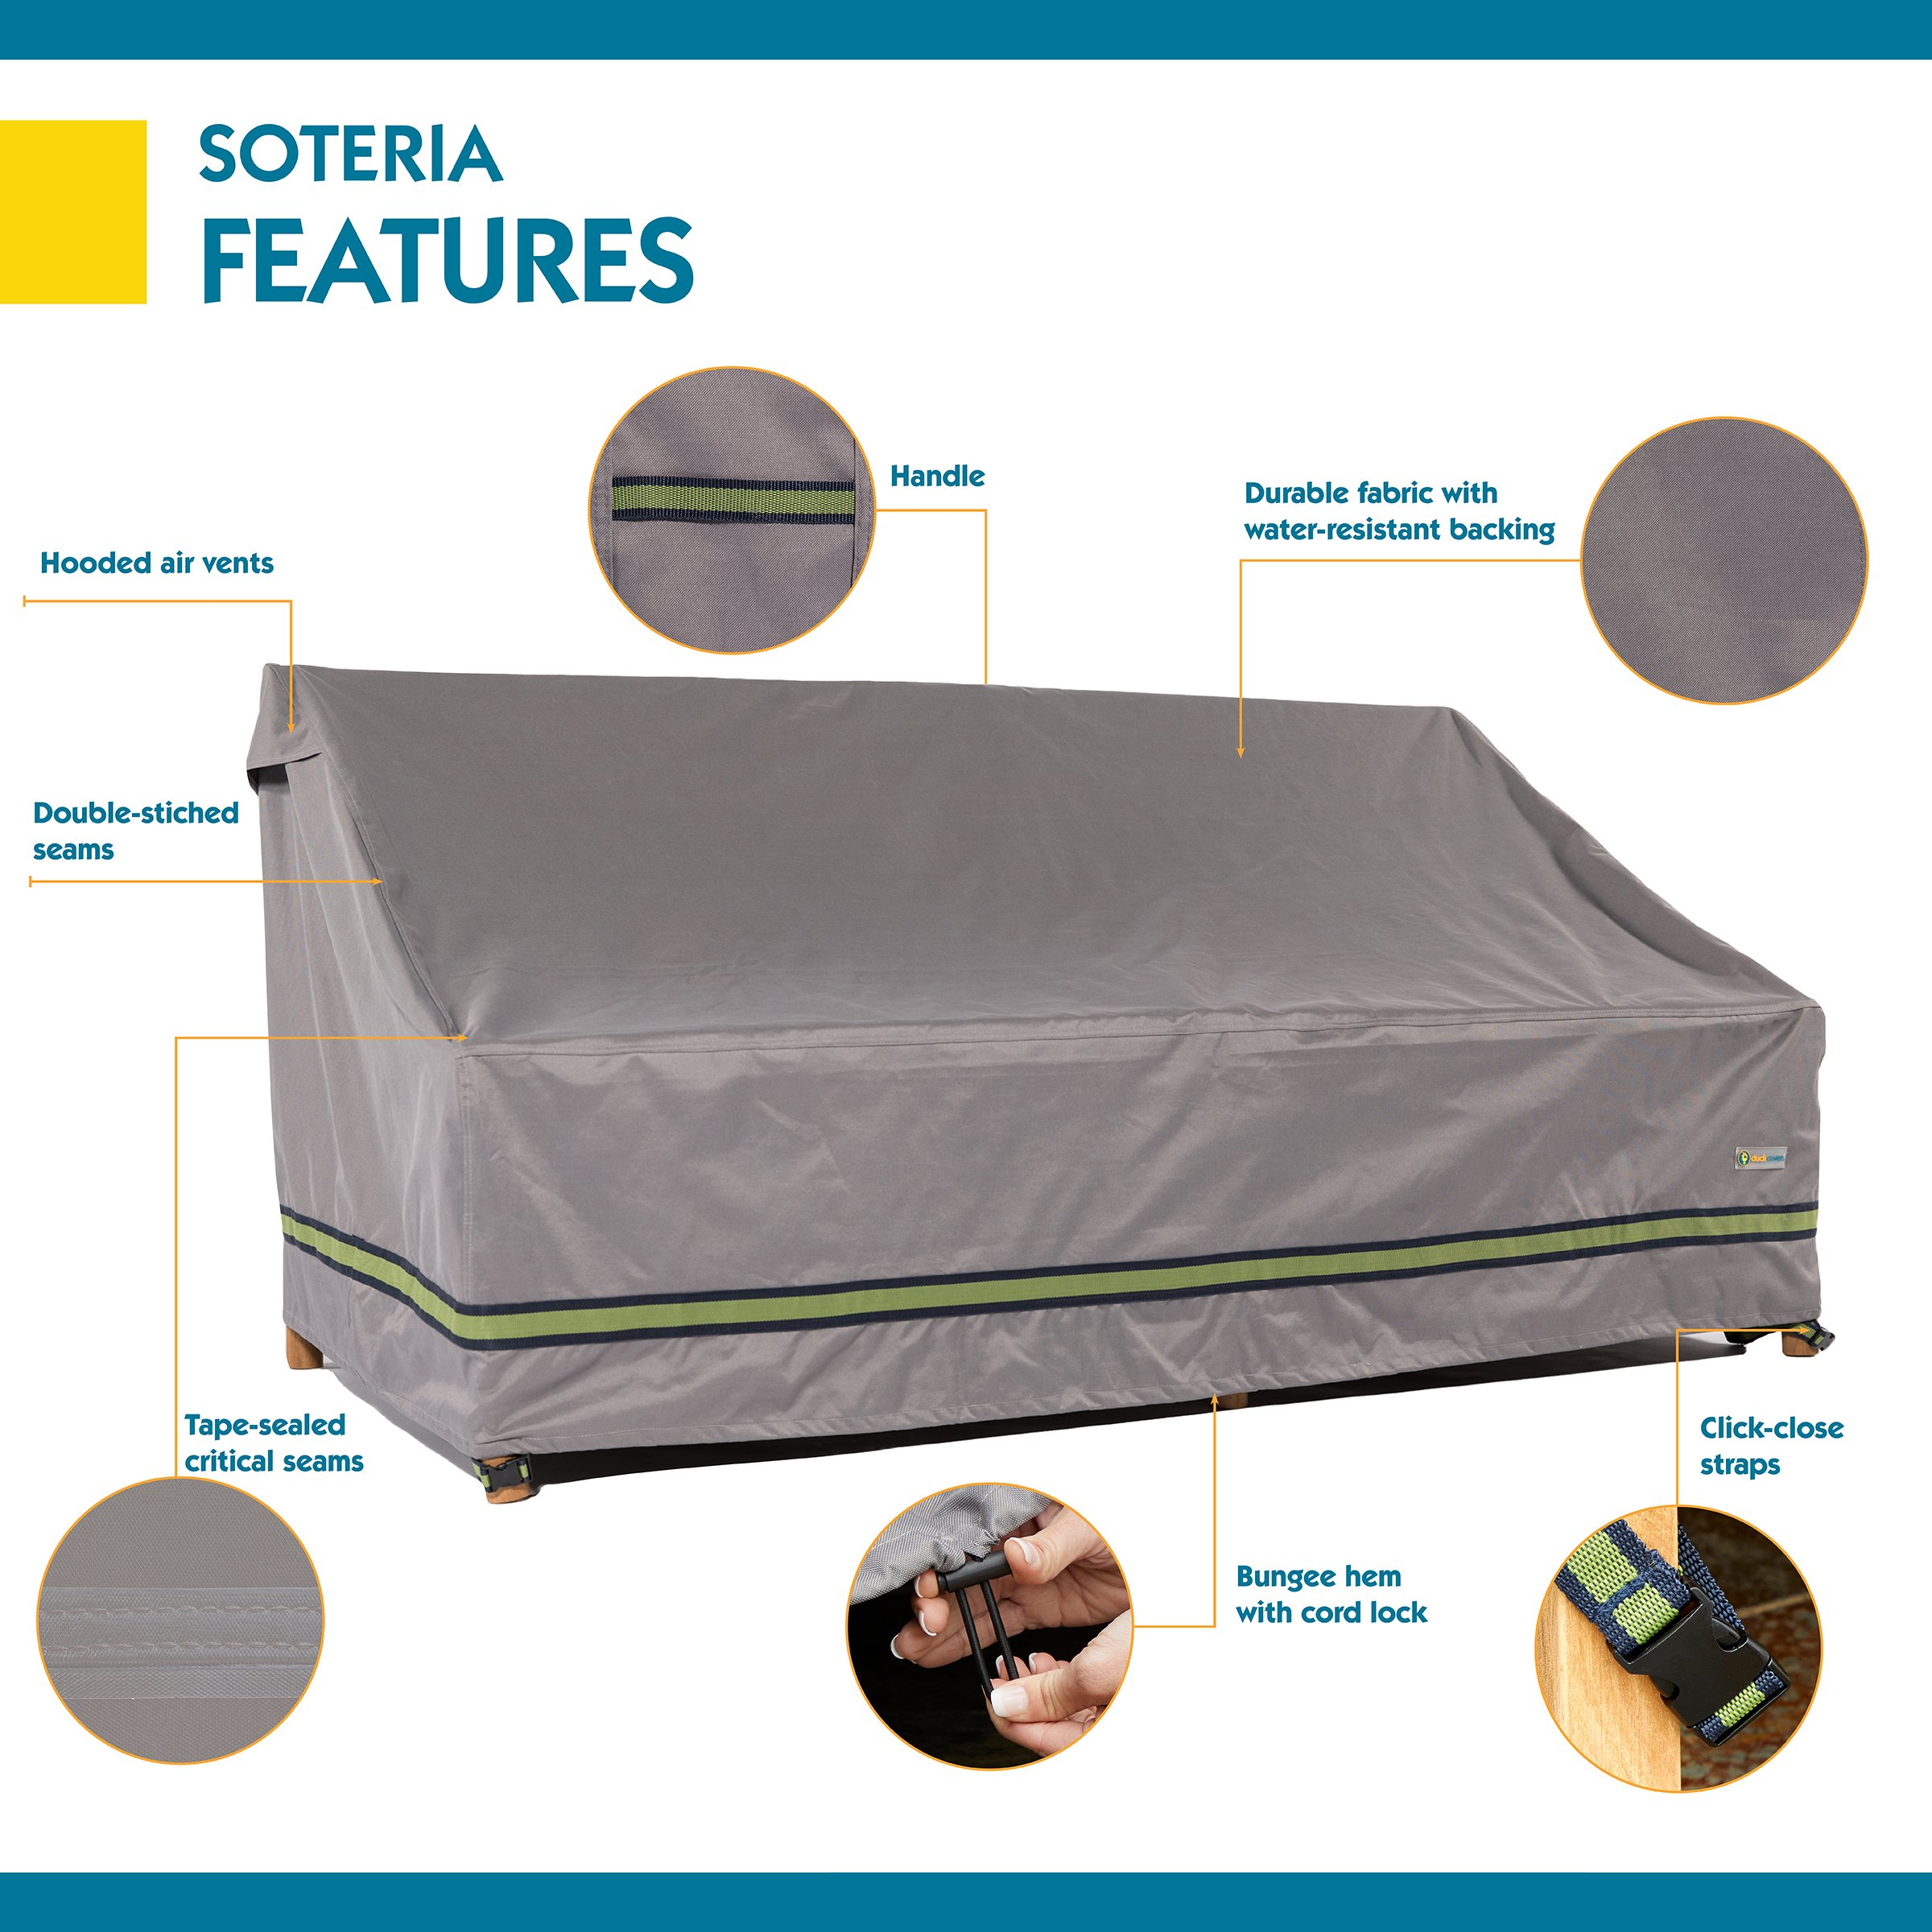 Duck Covers Soteria Rainproof 62'' Wide Patio Loveseat Cover by Duck Covers (Image #3)